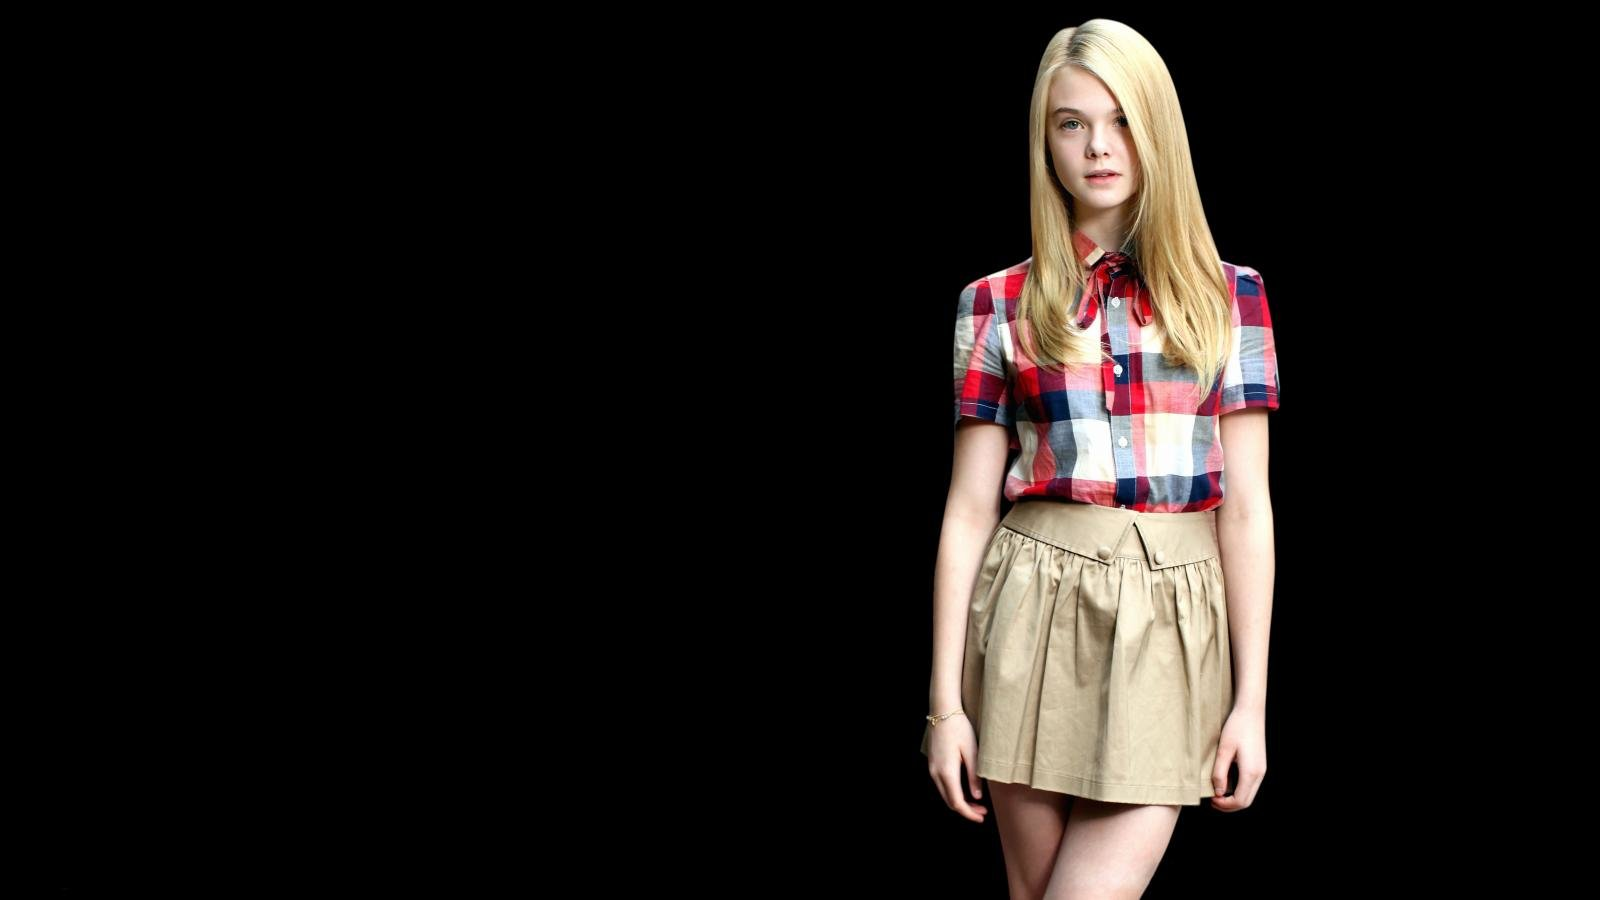 High resolution Elle Fanning hd 1600x900 wallpaper ID:450841 for computer